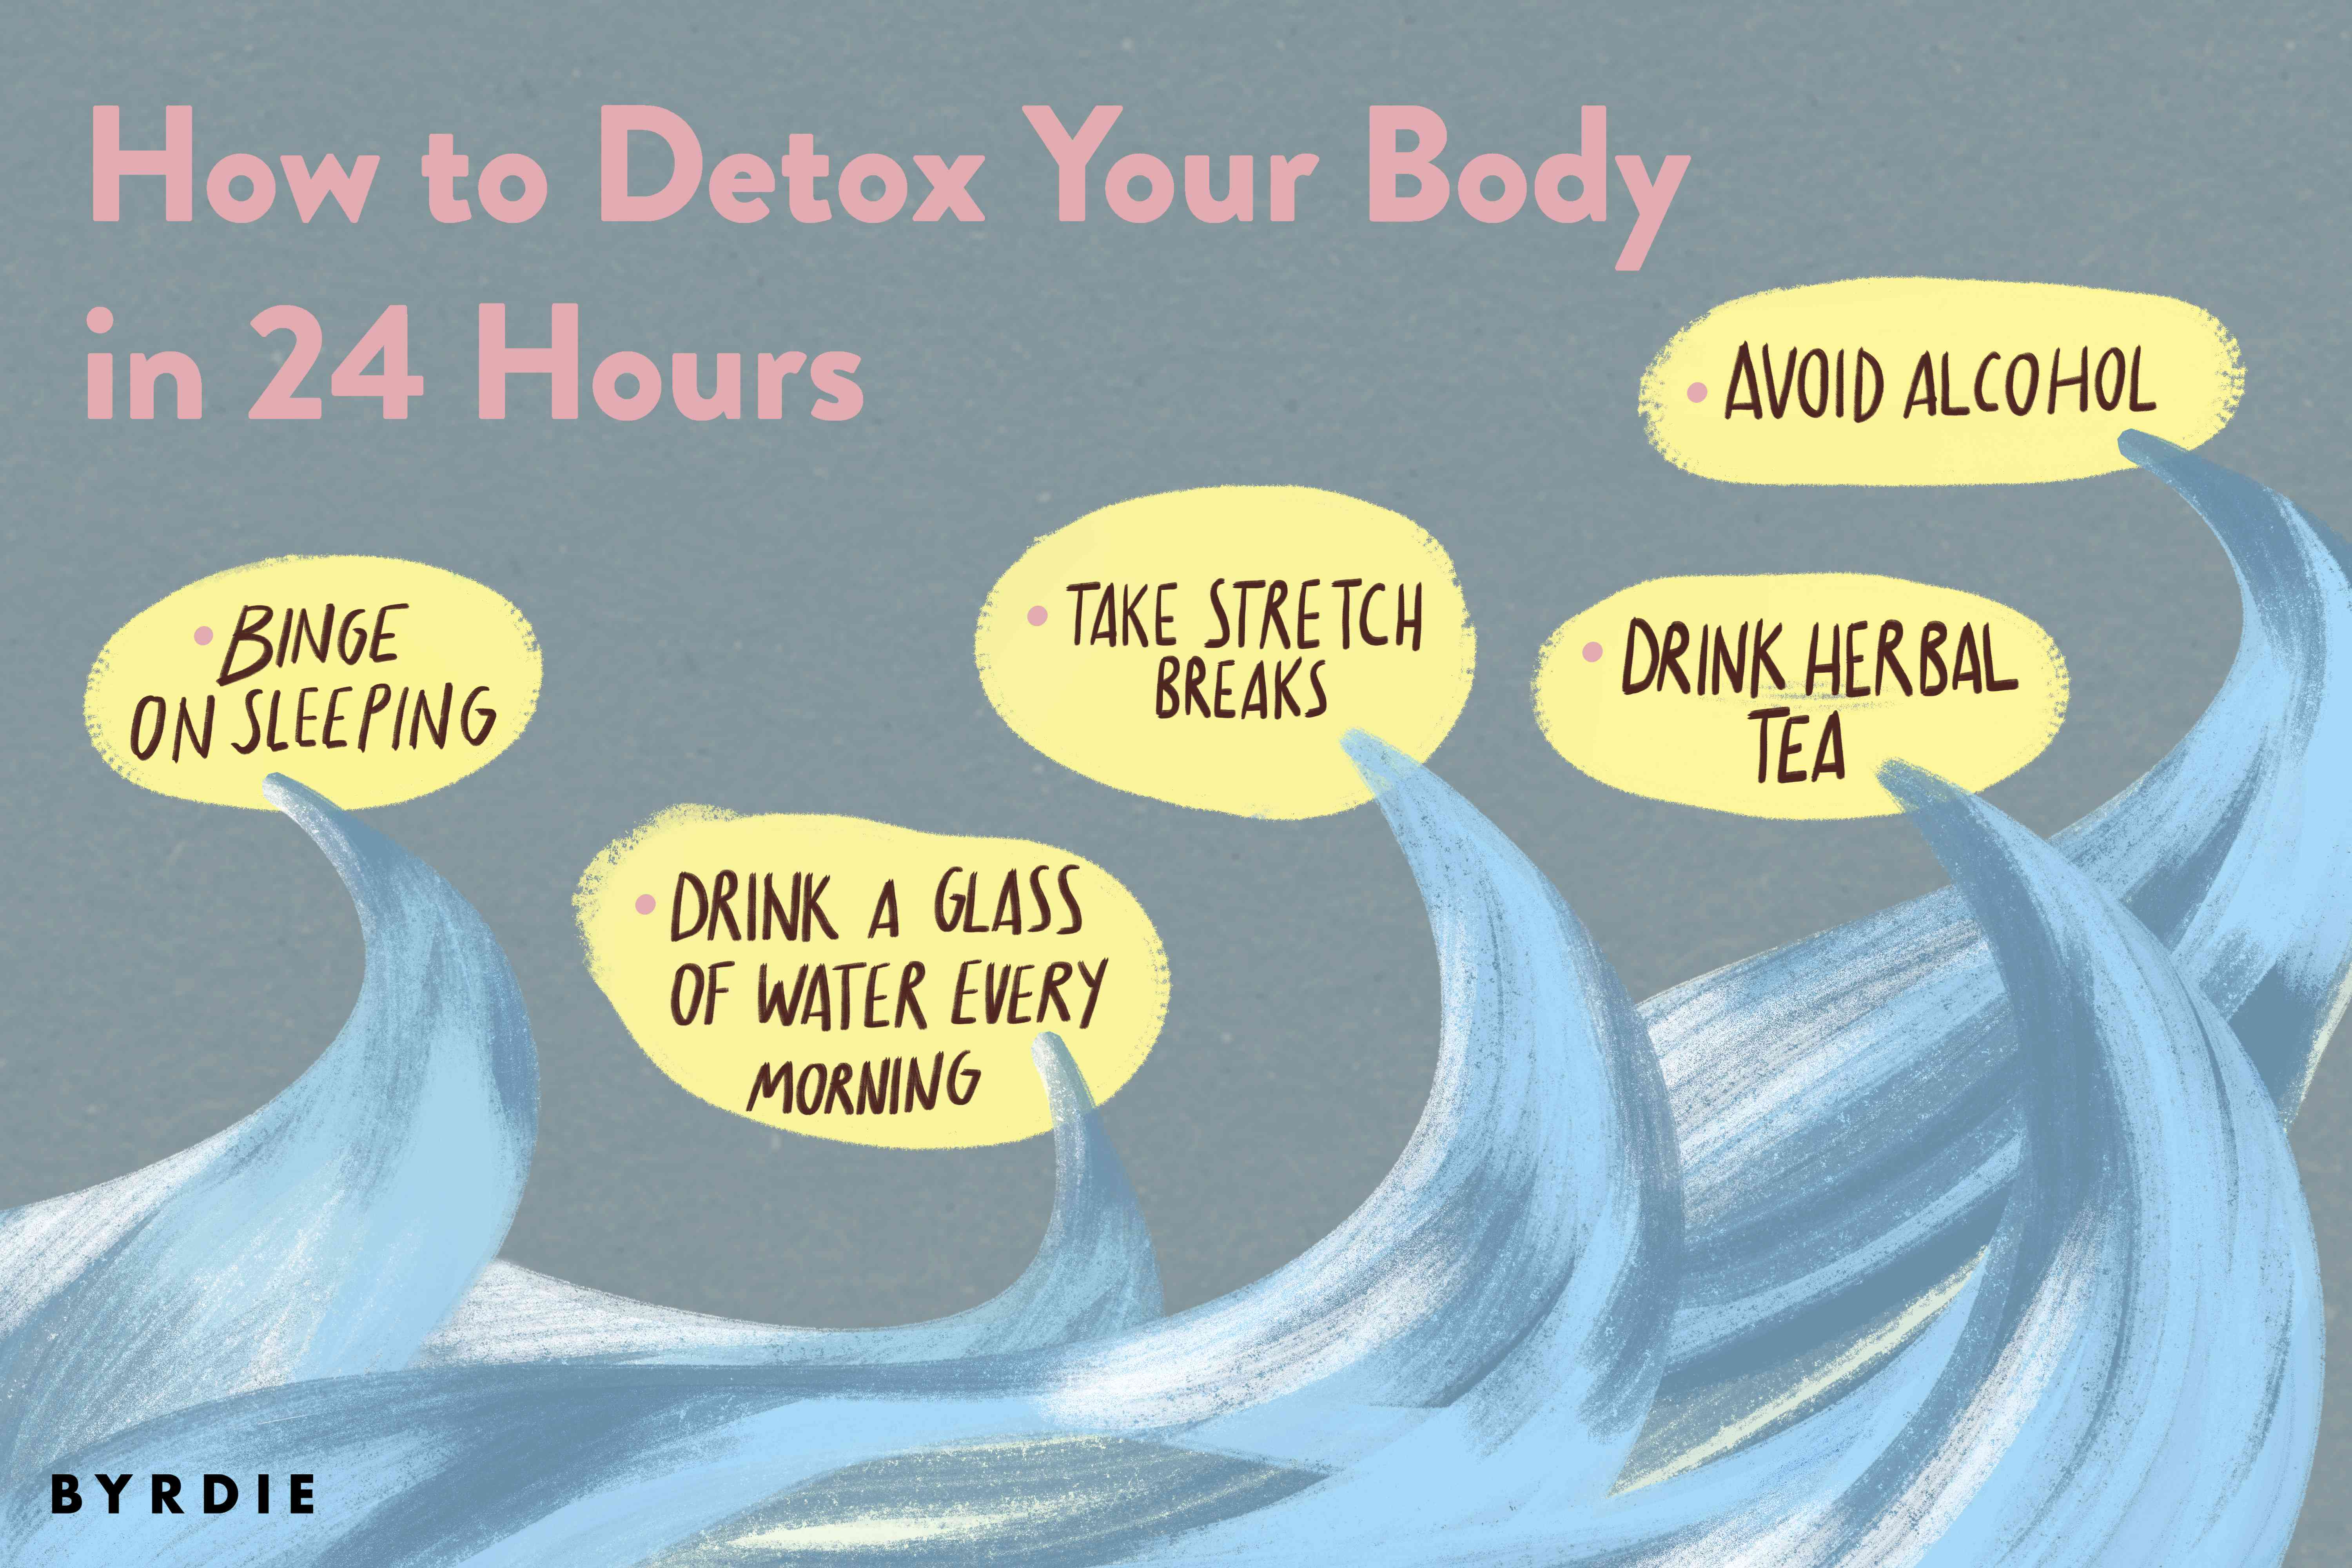 6 Easy Ways to Detox Your Body in Just 24 Hours